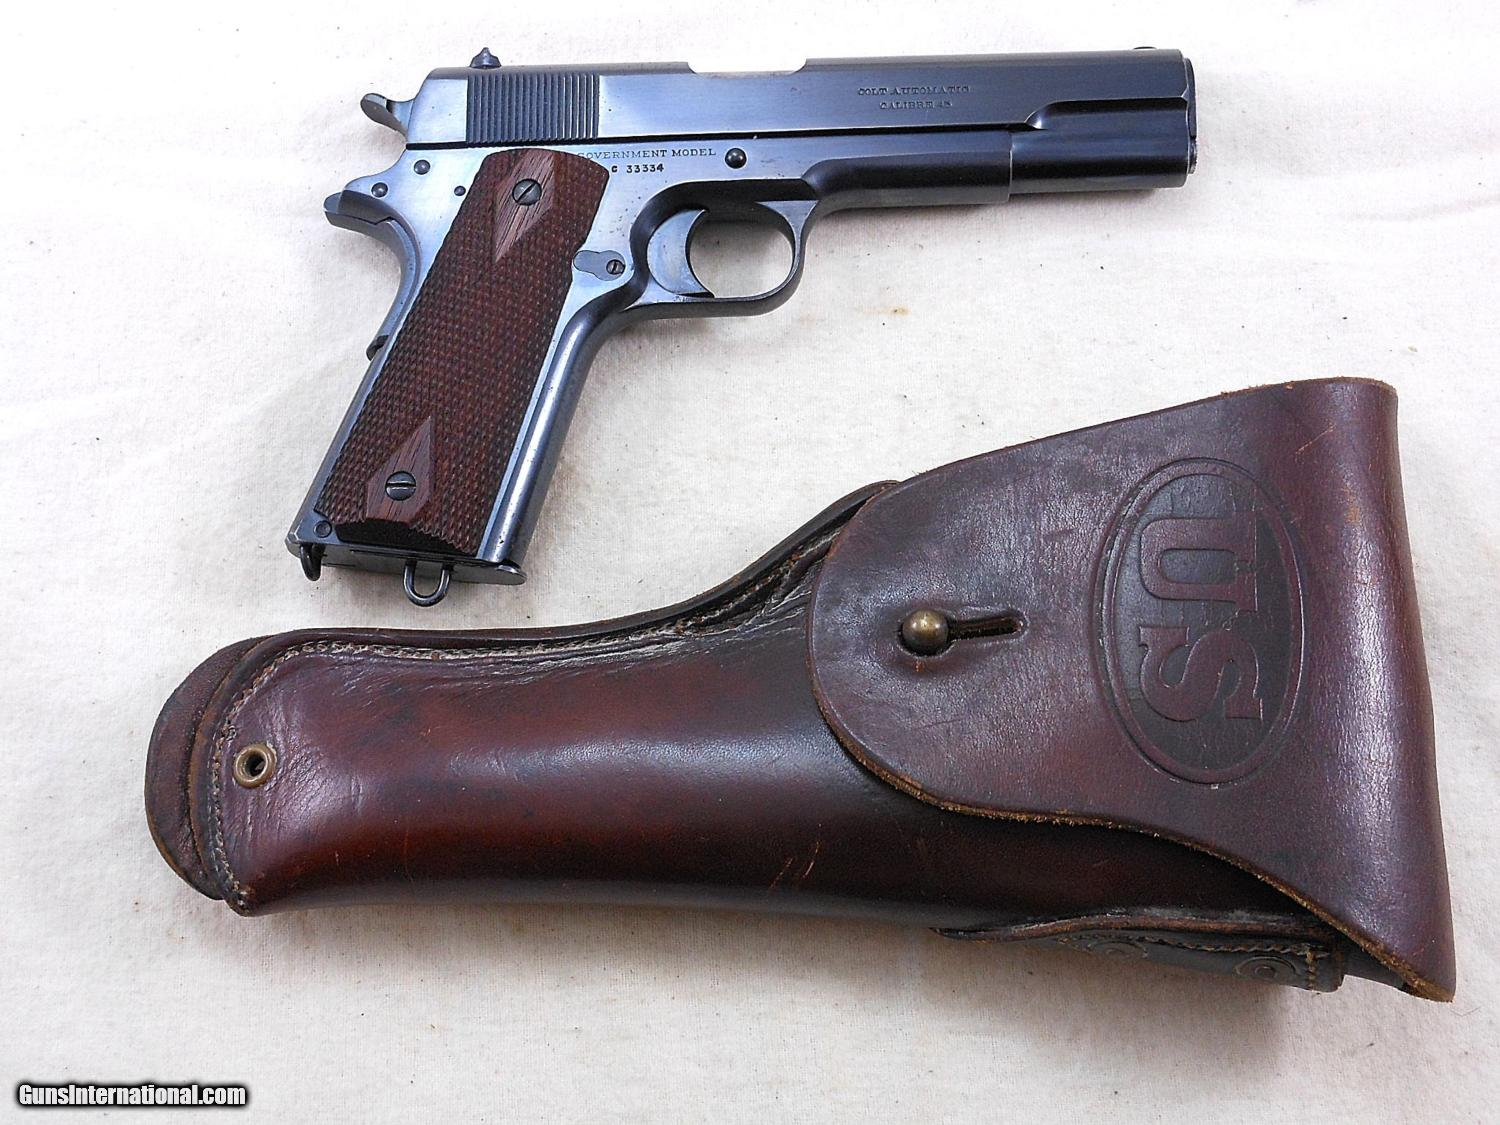 colt 1911 dating Evolution of the 1911 in pictures the evolution of the 1911 started in 1898 with the pistol that became the colt  the 1911 the 1909 had the familiar single link.